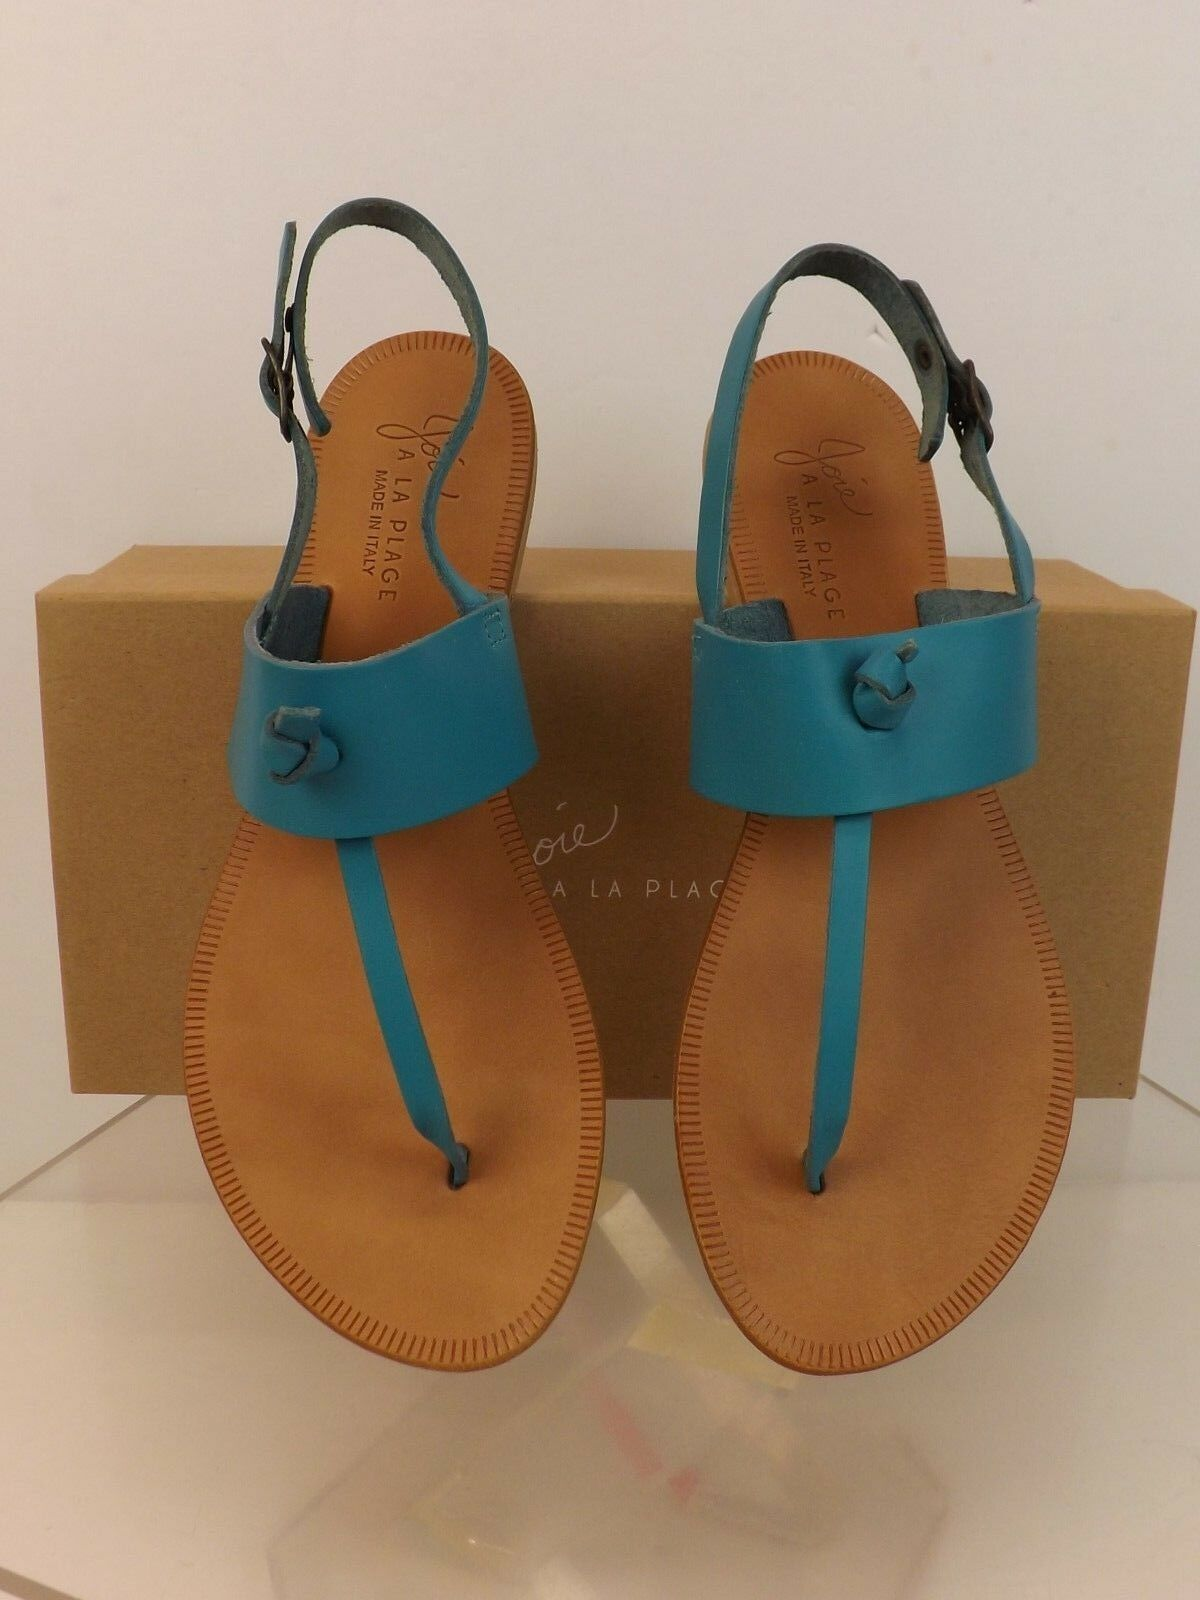 NIB JOIE BASTIA BLUE LAGOON LEATHER THONG FLAT SANDALS 38 $135 ITALY